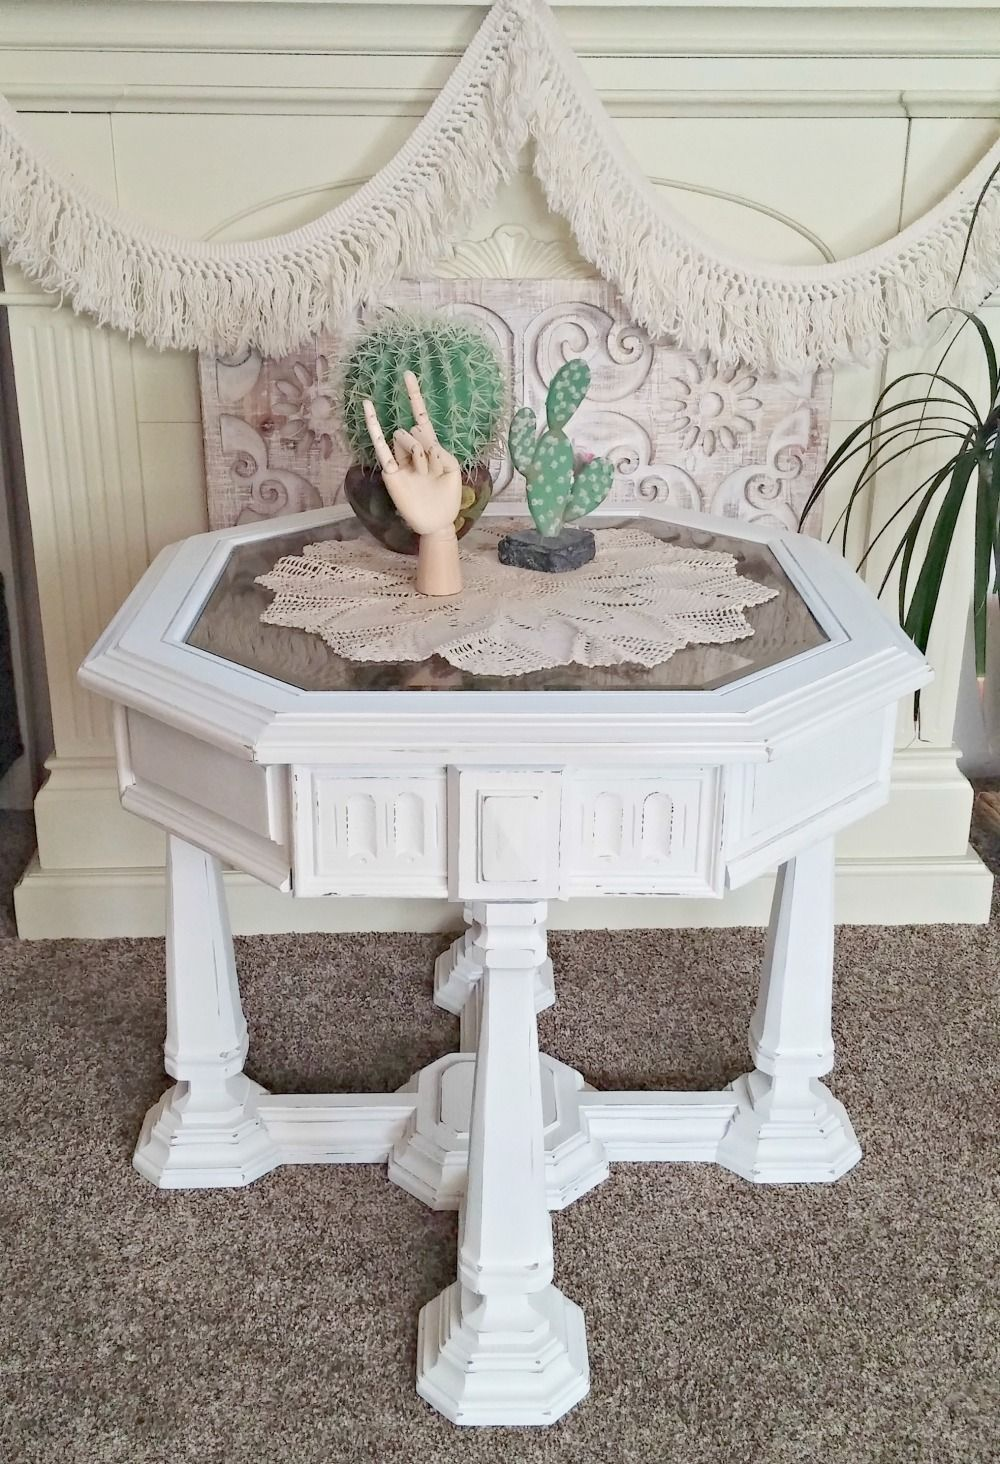 1970 s gothic style end table makeover in 2018 boho rooms decor rh pinterest com